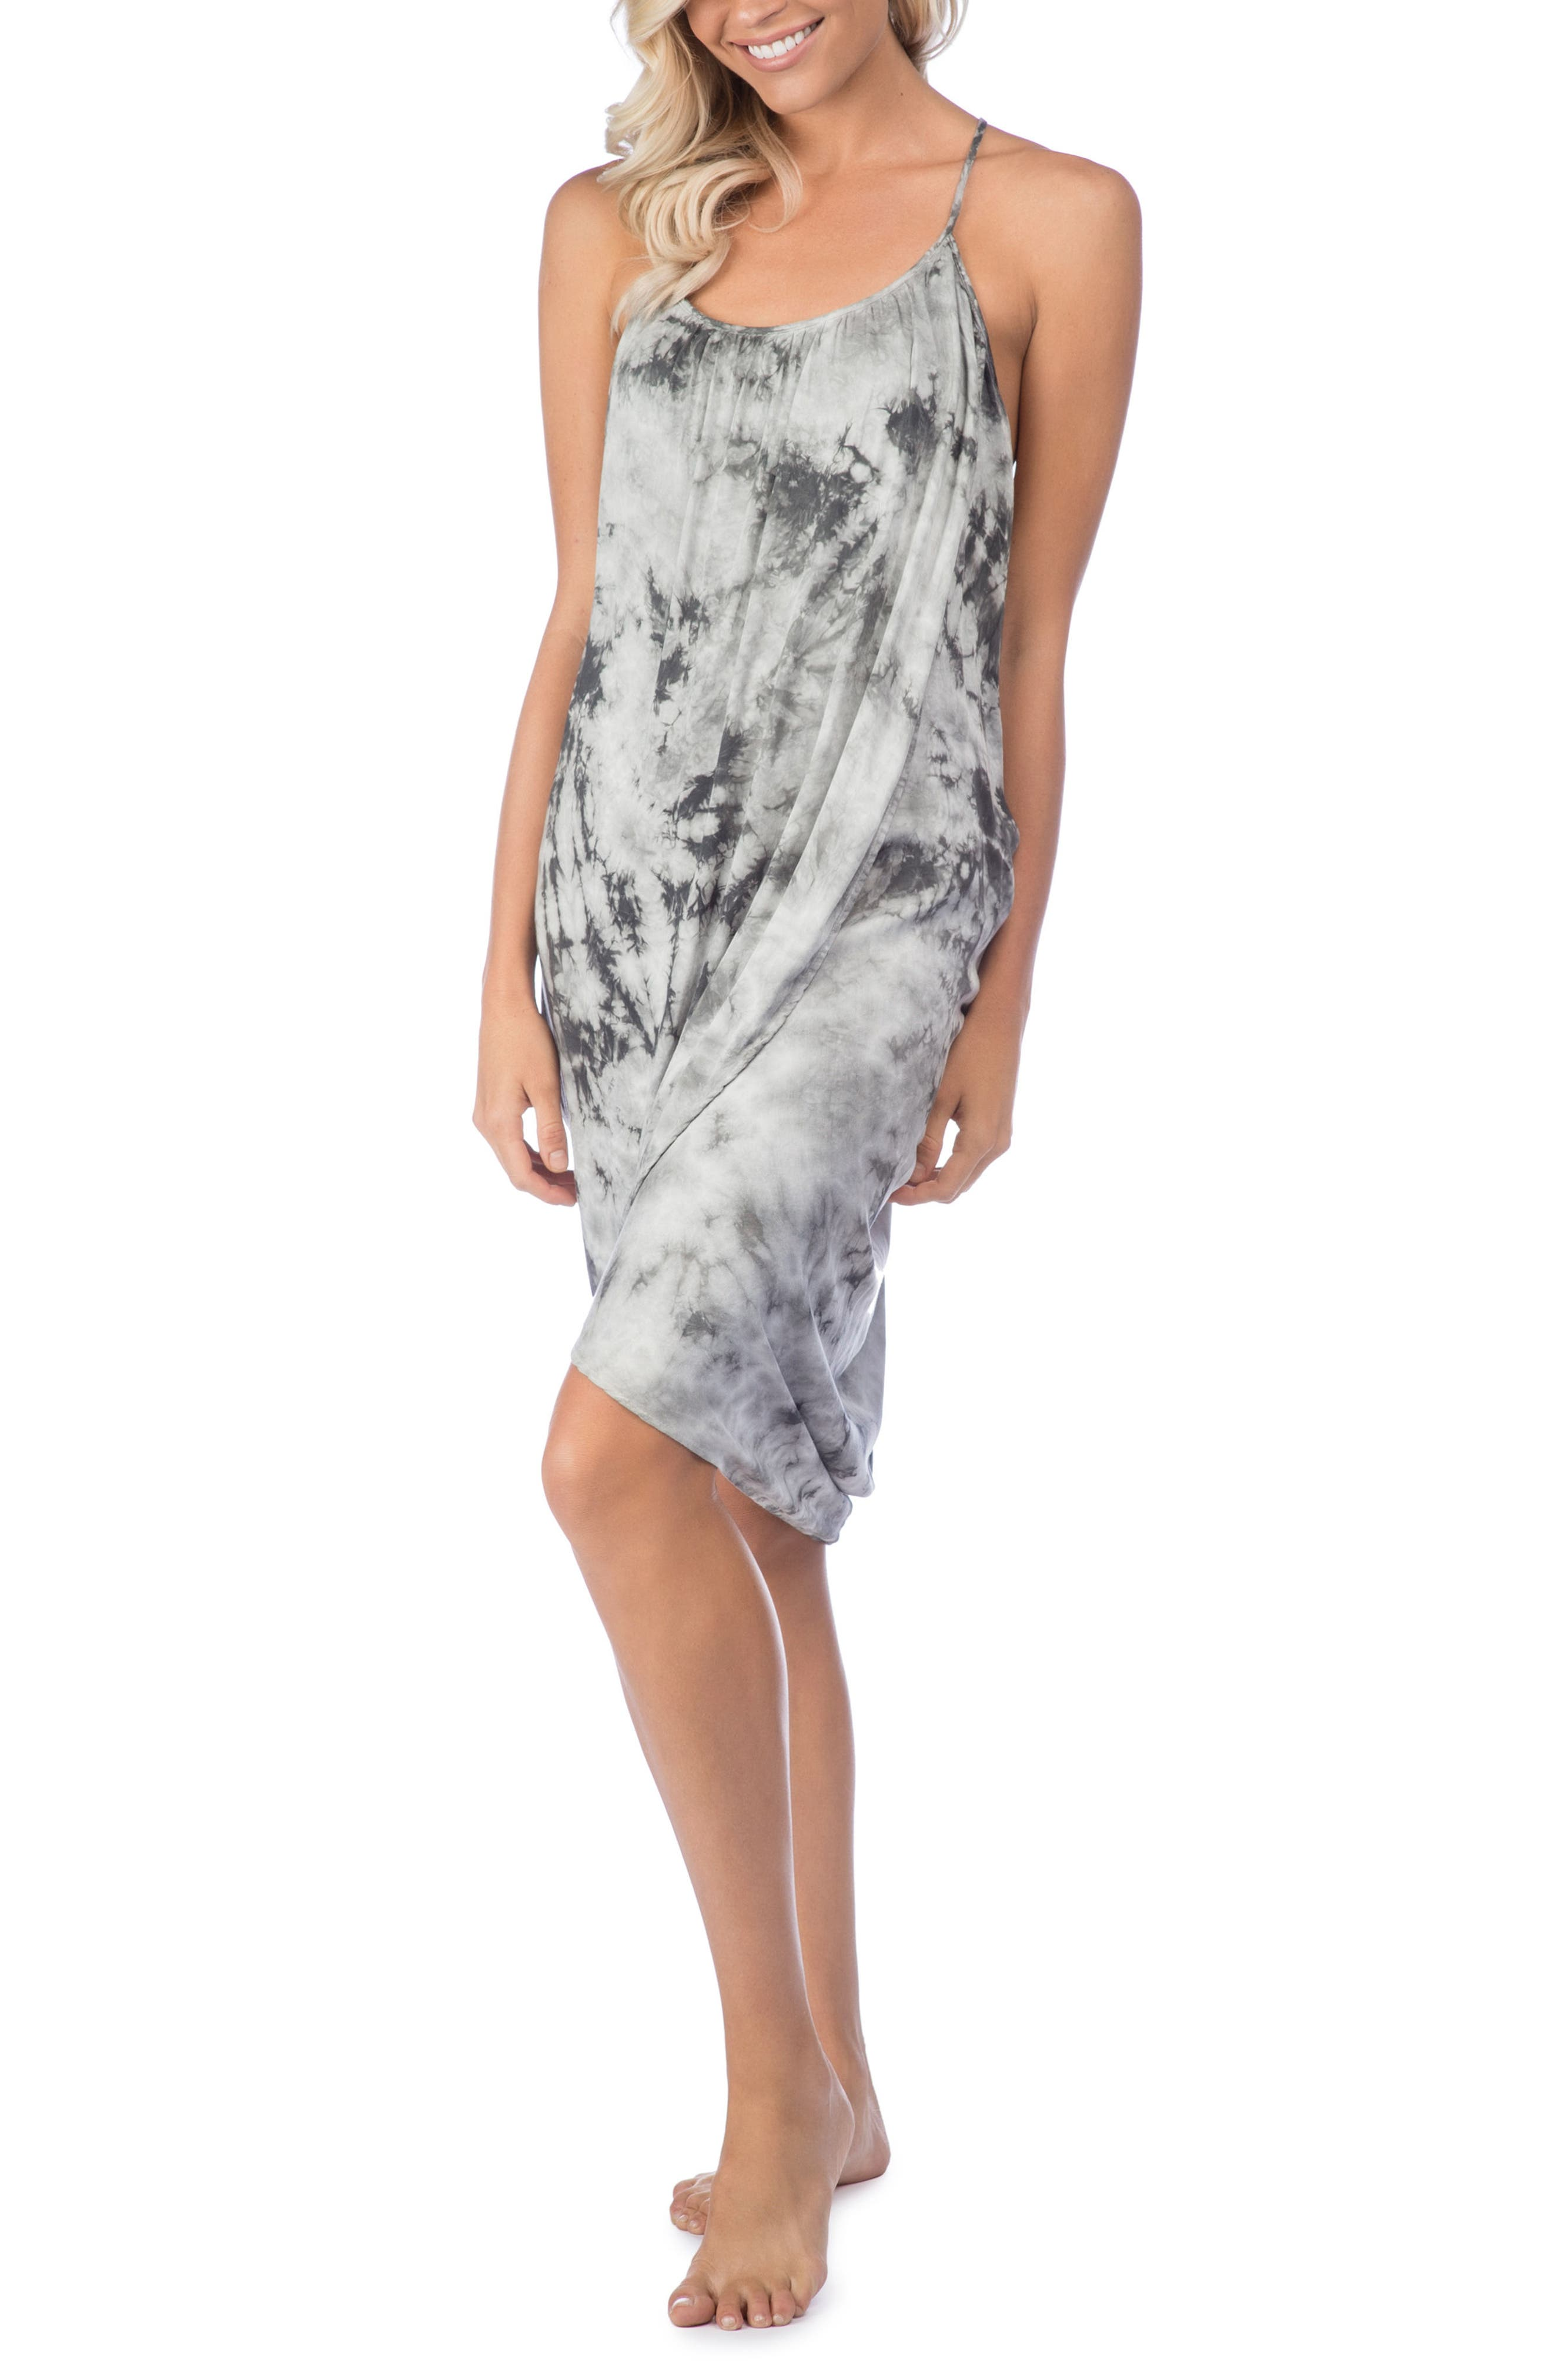 Crystal Forest Genvieve Cover-Up Dress,                         Main,                         color, Charcoal